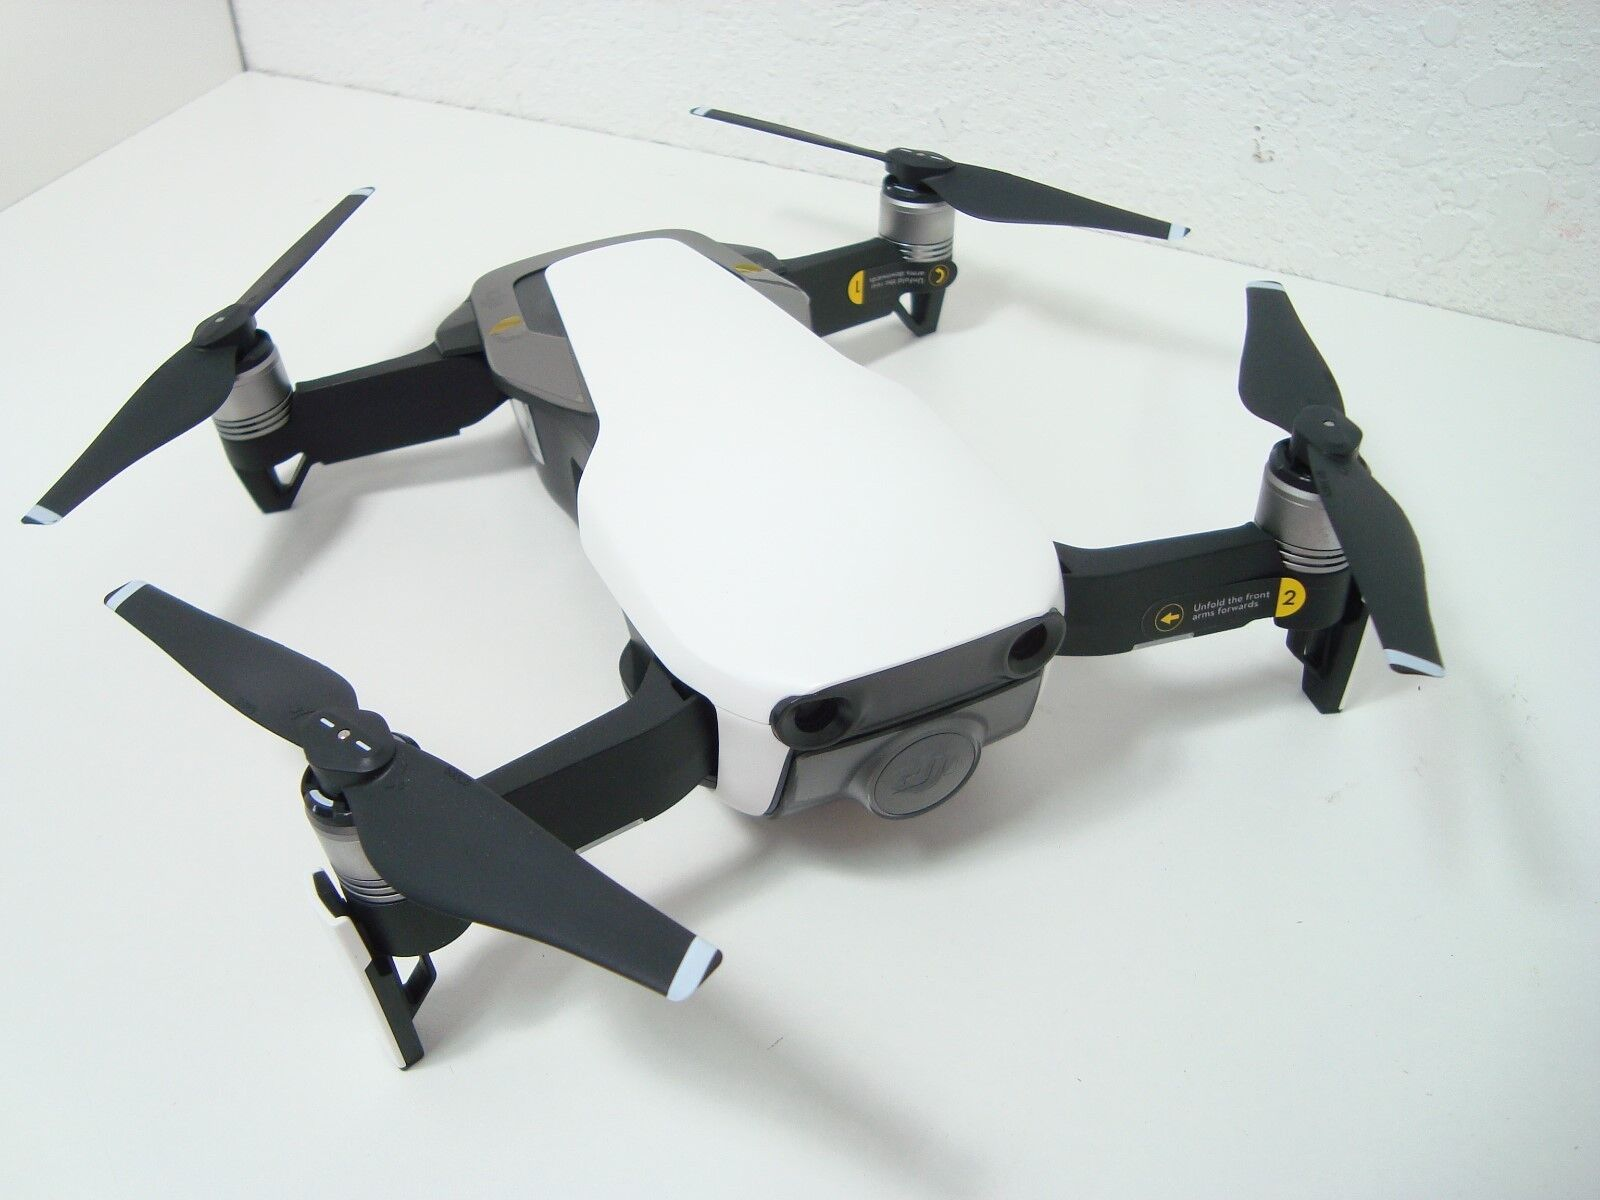 New DJI Mavic Air (White) Drone Only new replacement Props Camera ready to fly